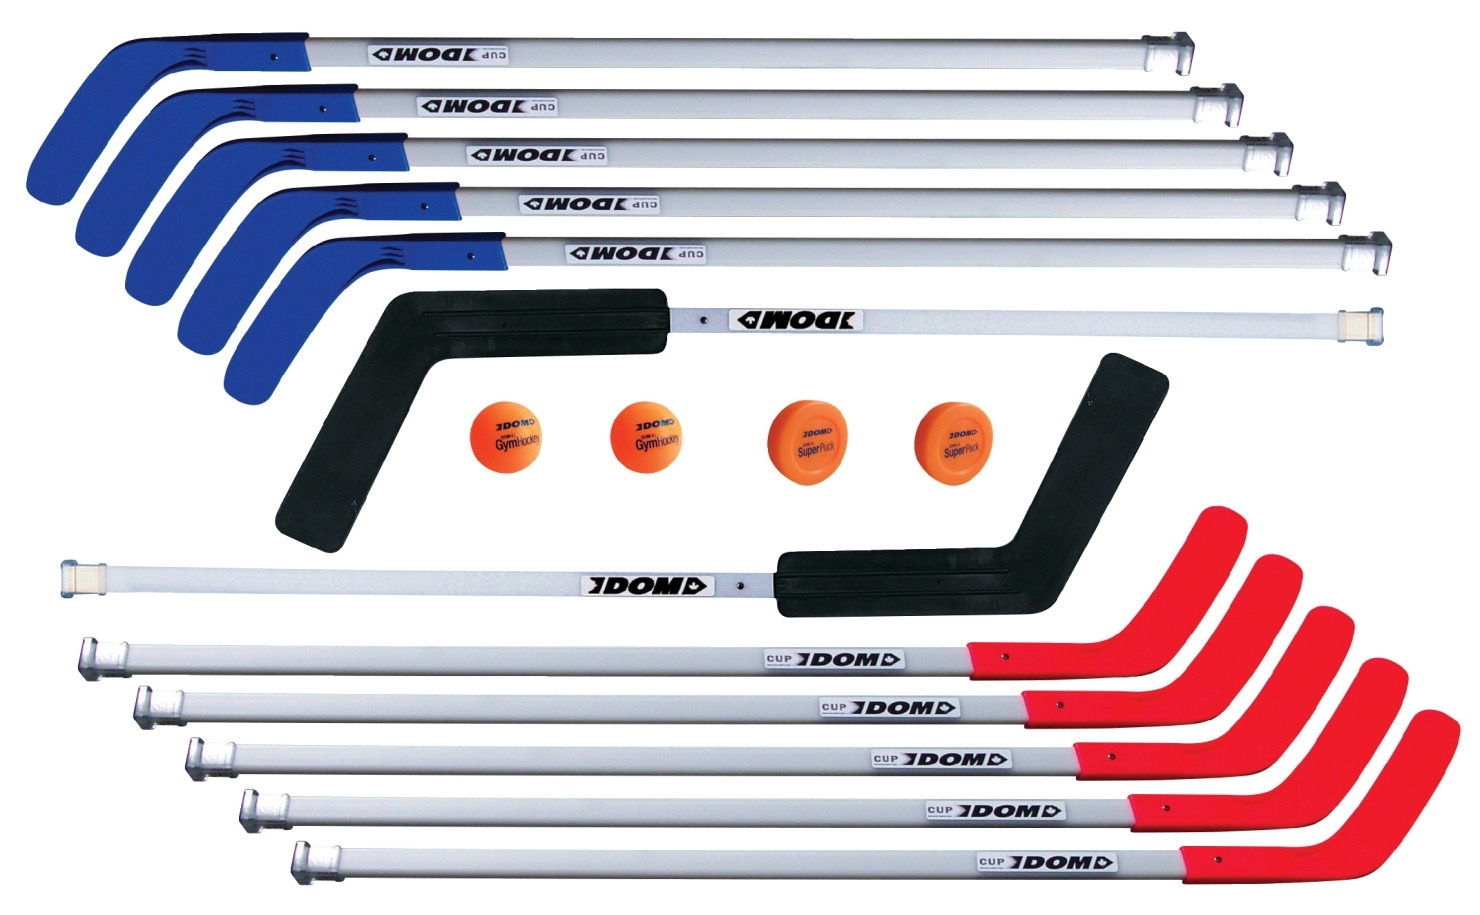 Sports & Fitness Physical Education & Sport Balls Field Hockey Balls - 007567 - Dom 52 In Pro Hockey Stick Set; Includes 8 Sticks; 2 Goalie Sticks; 2 Superpucks And 2 Balls; Grades 10 And Up 007567